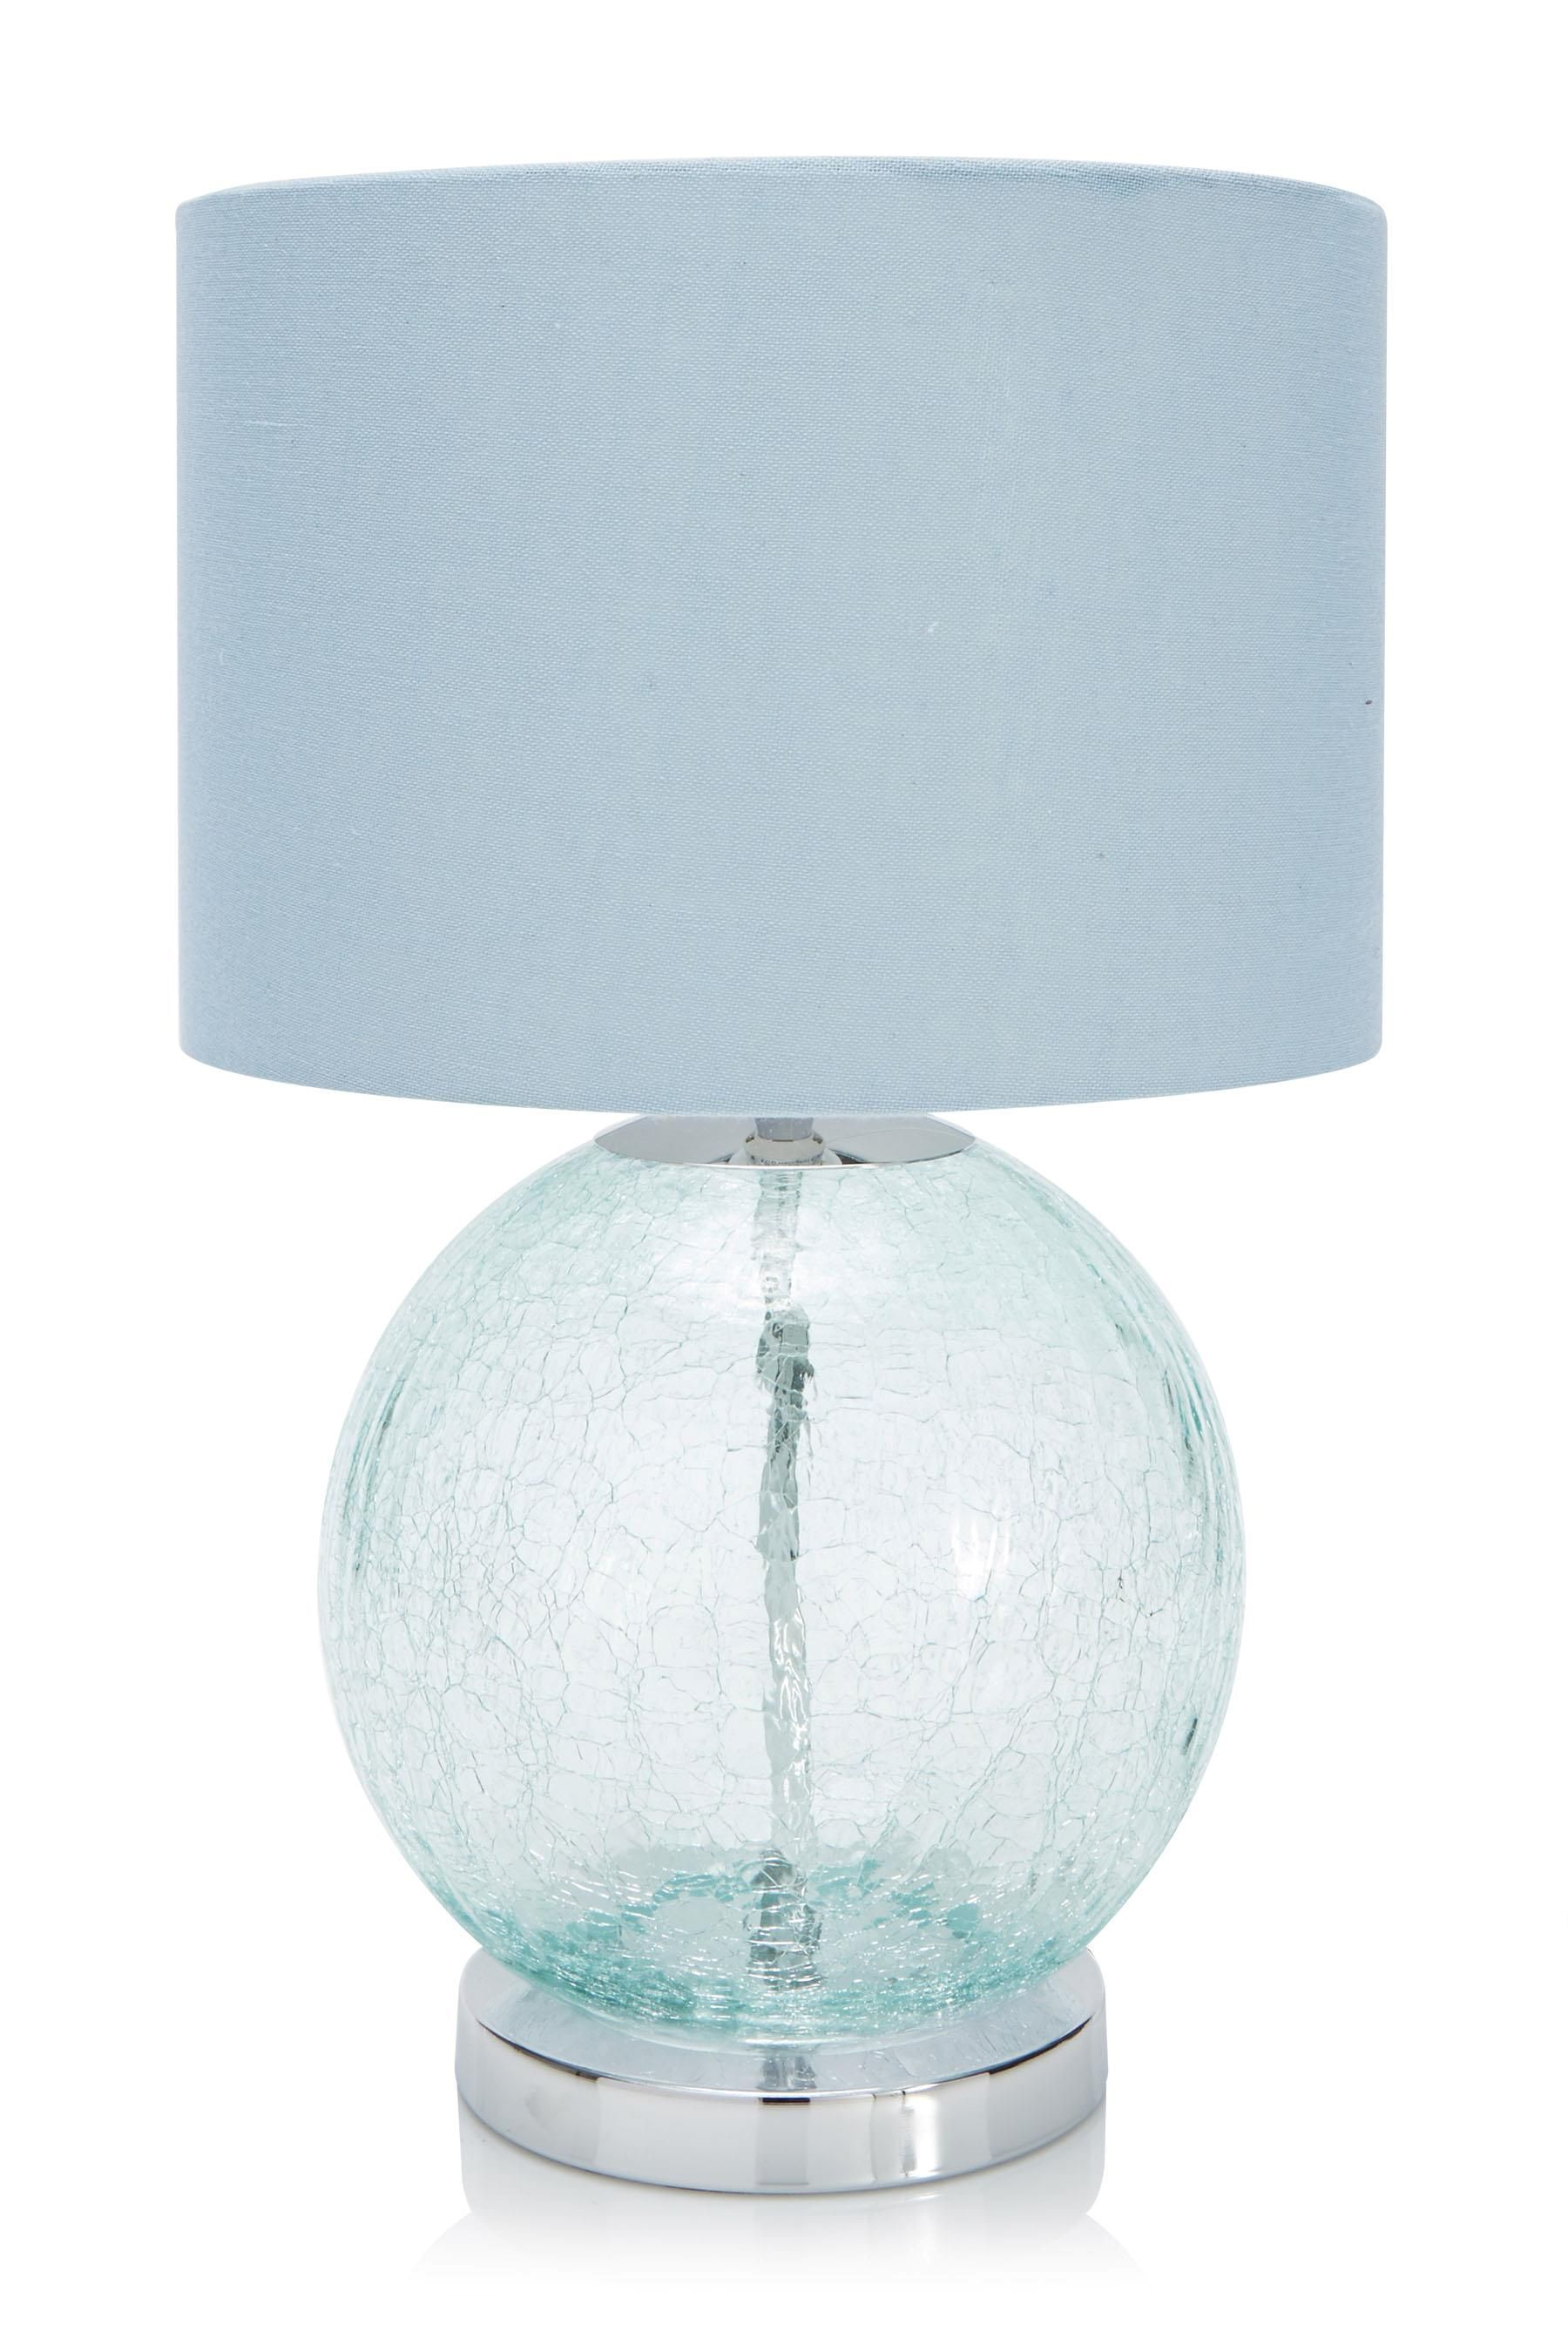 Buy teal crackle table lamp from the next uk online shop new buy teal crackle table lamp from the next uk online shop geotapseo Choice Image